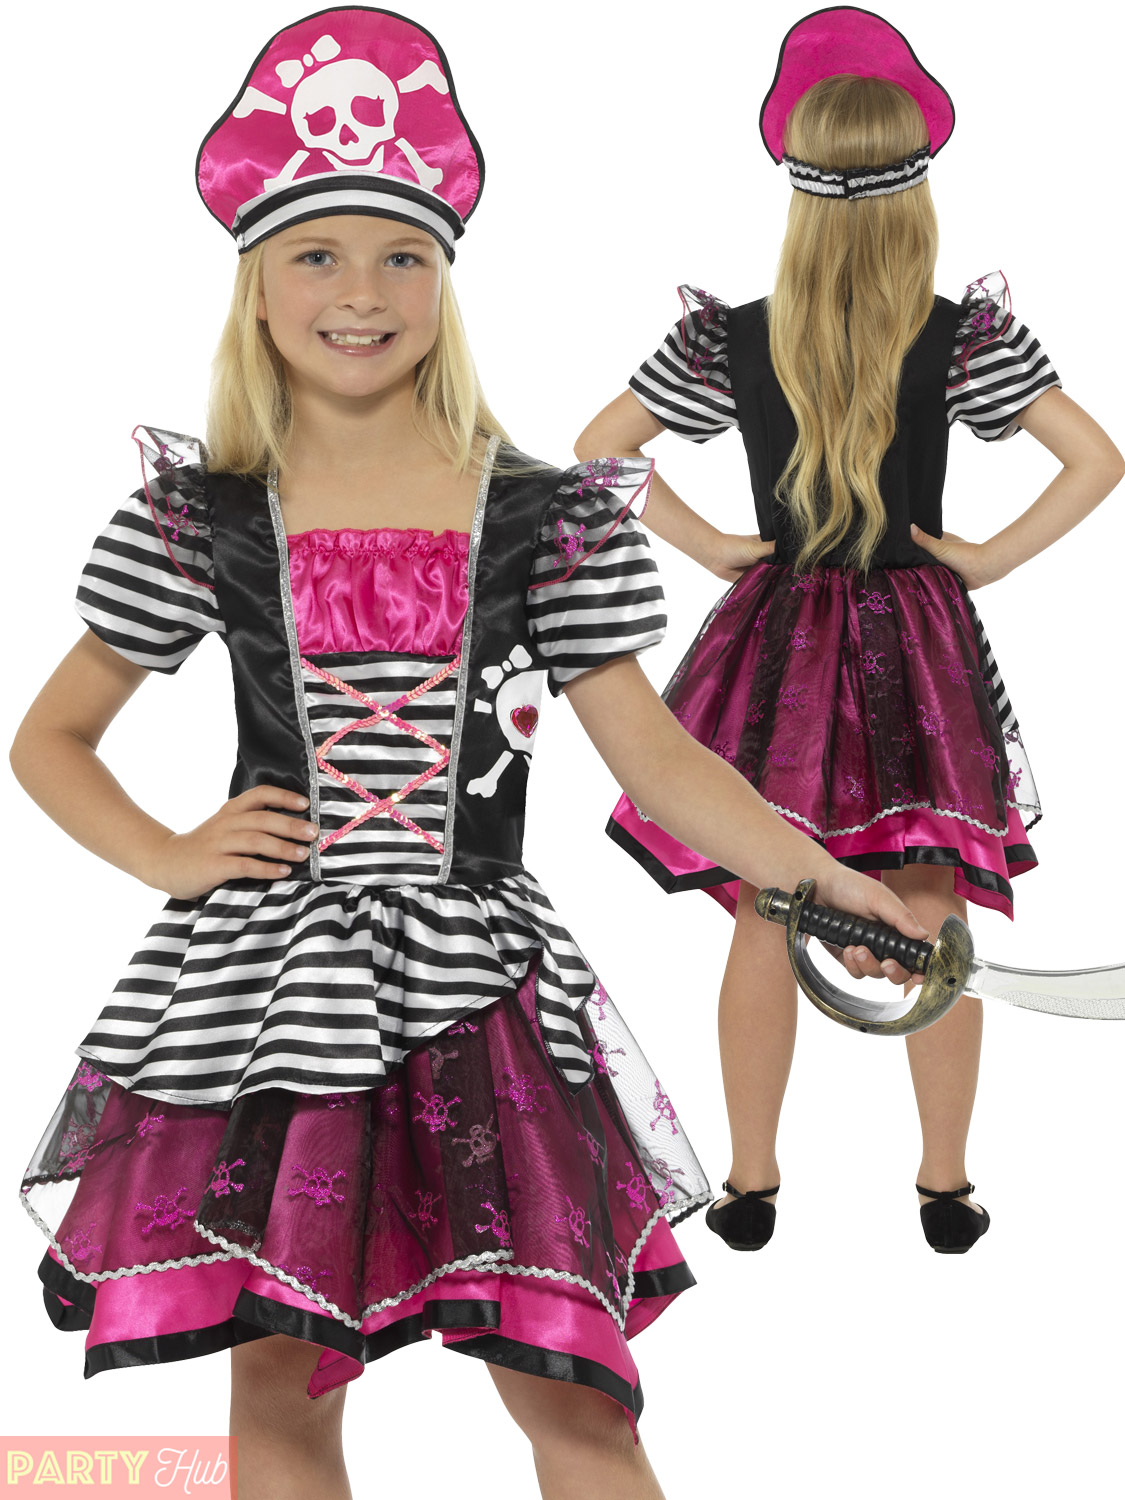 Girls Pink Pirate Costume Childrens Kids Buccaneer Fancy Dress Caribbean Outfit